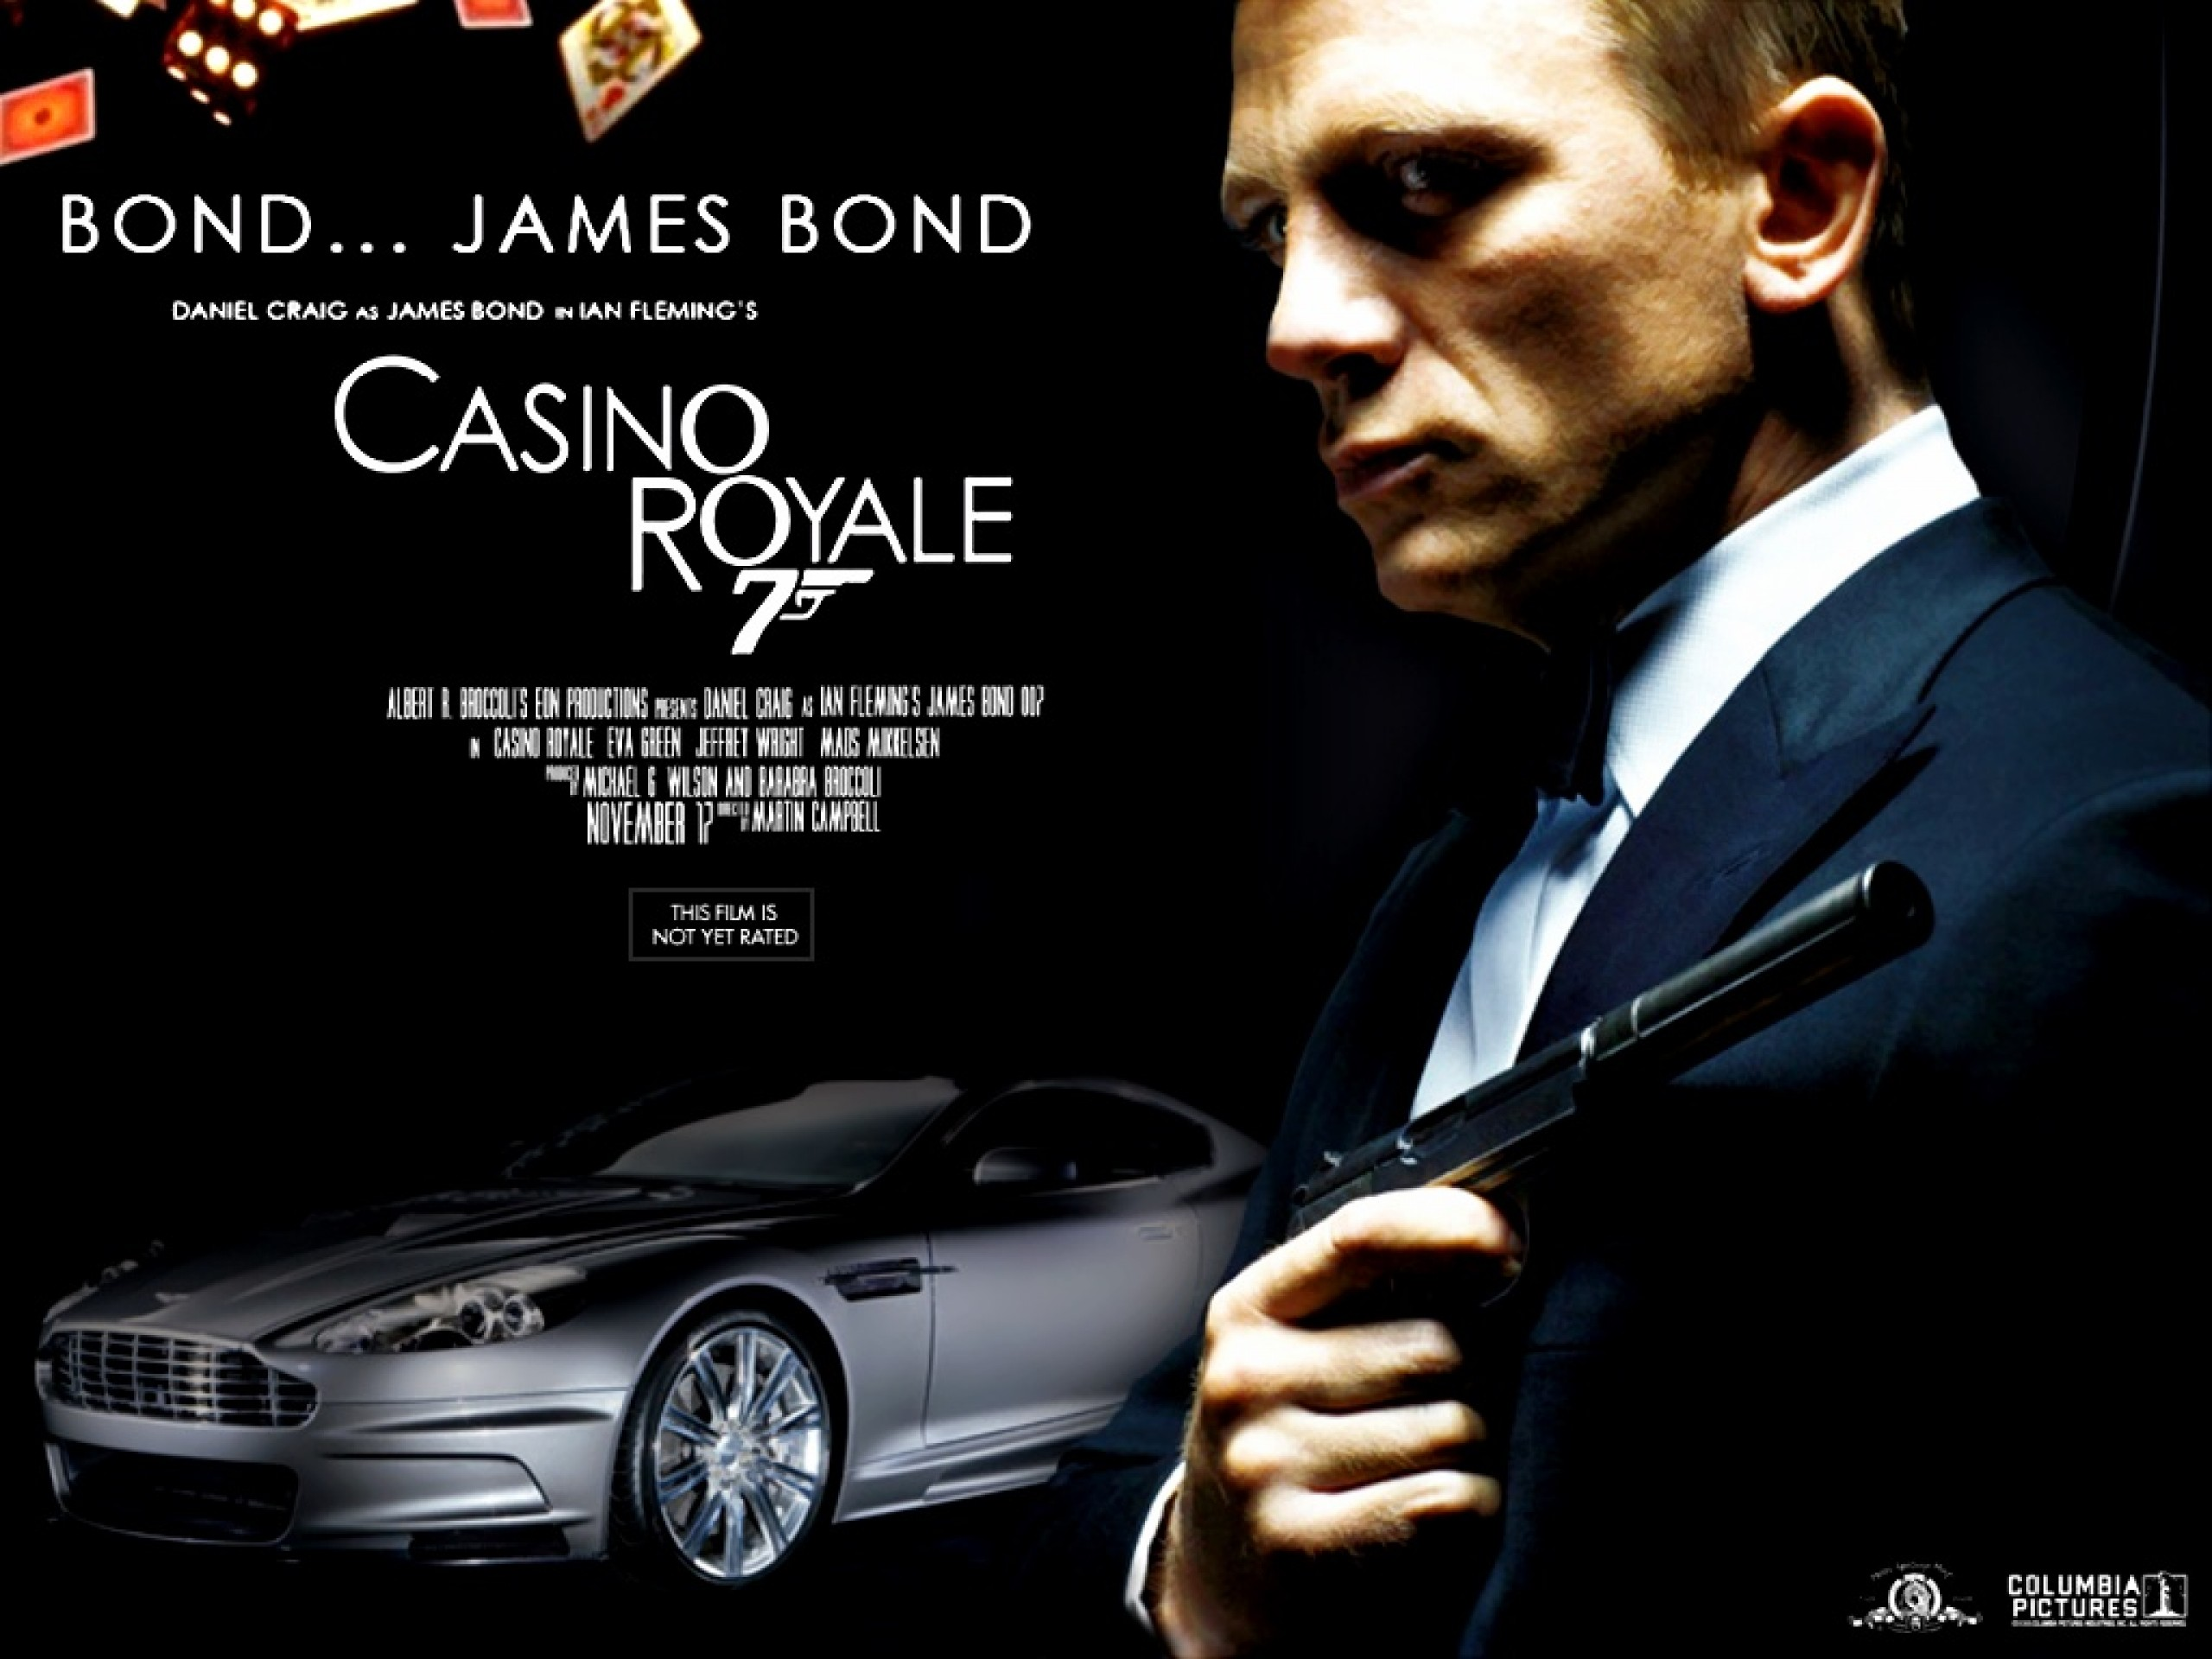 james bond casino royale full movie online casino of ra